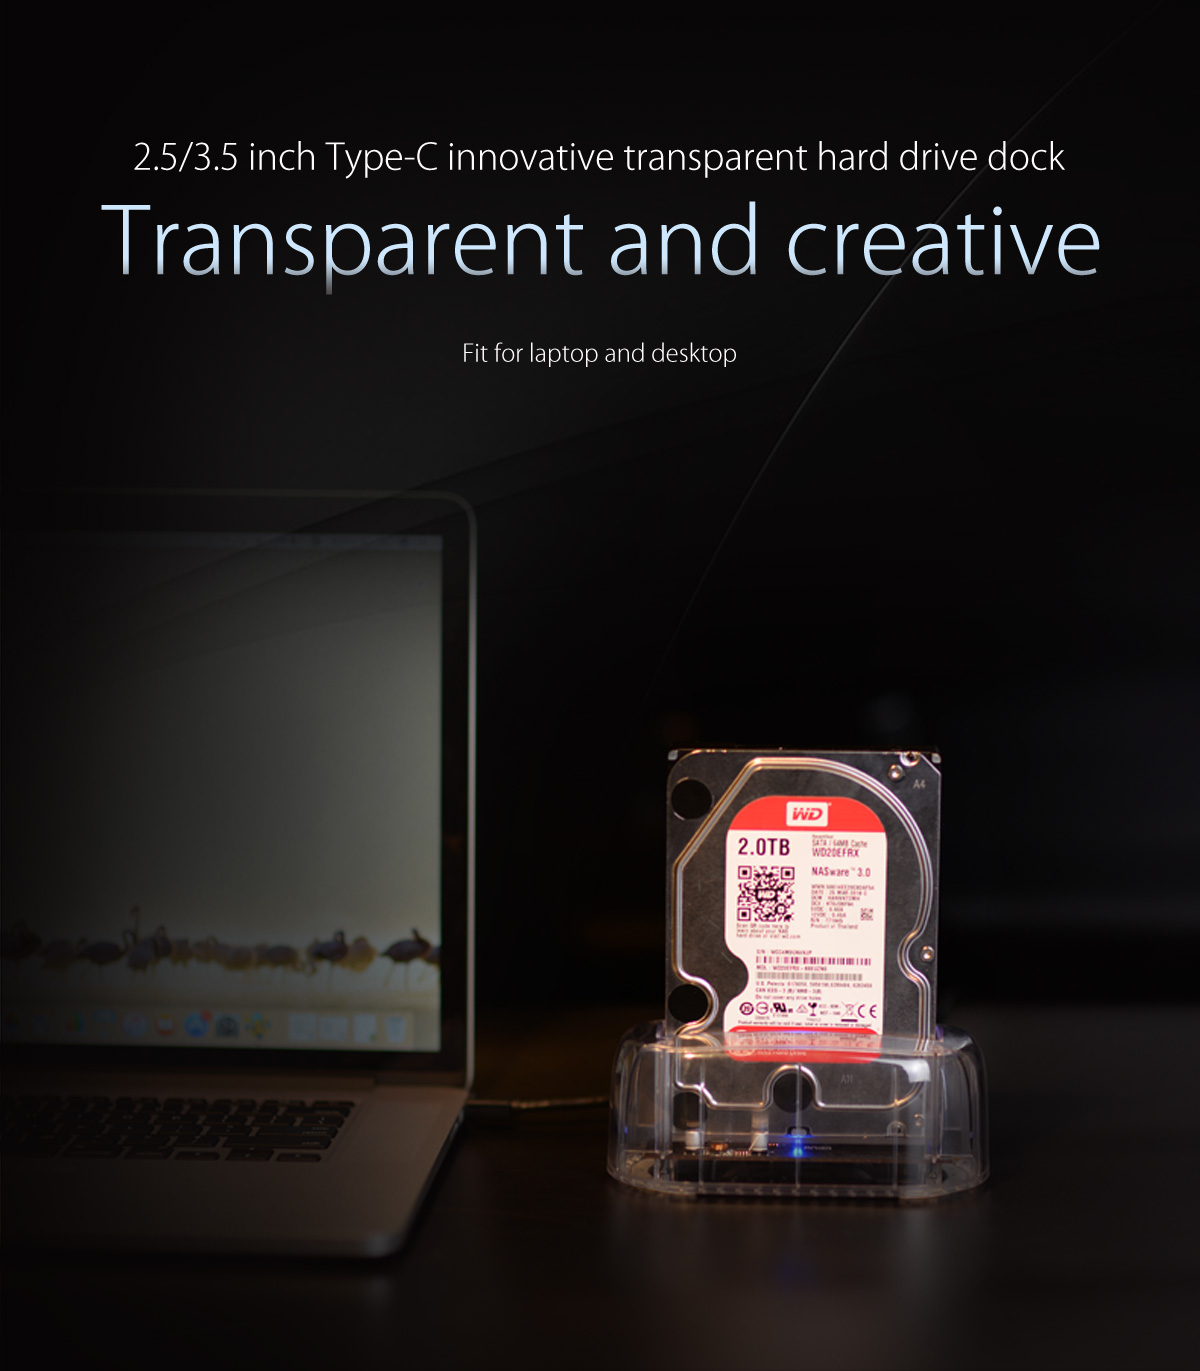 2.5/3.5 inch type-C innovative transparent hard drive dock